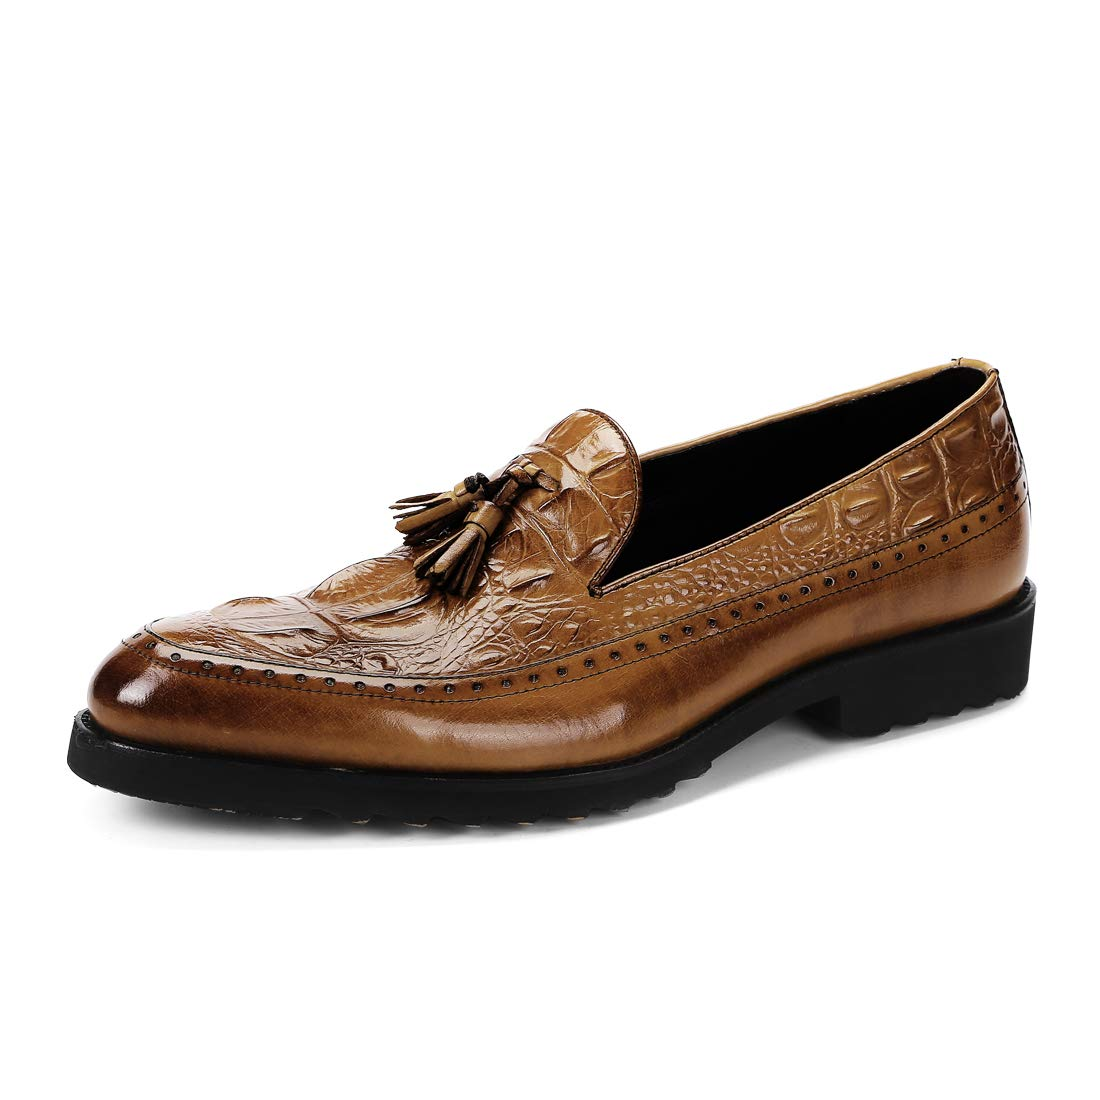 Brown Fashion Genuine Leather Formal Dress Boat Pointed shoes Pattern shoes Men for Crocodile Loafers Classic Tassel